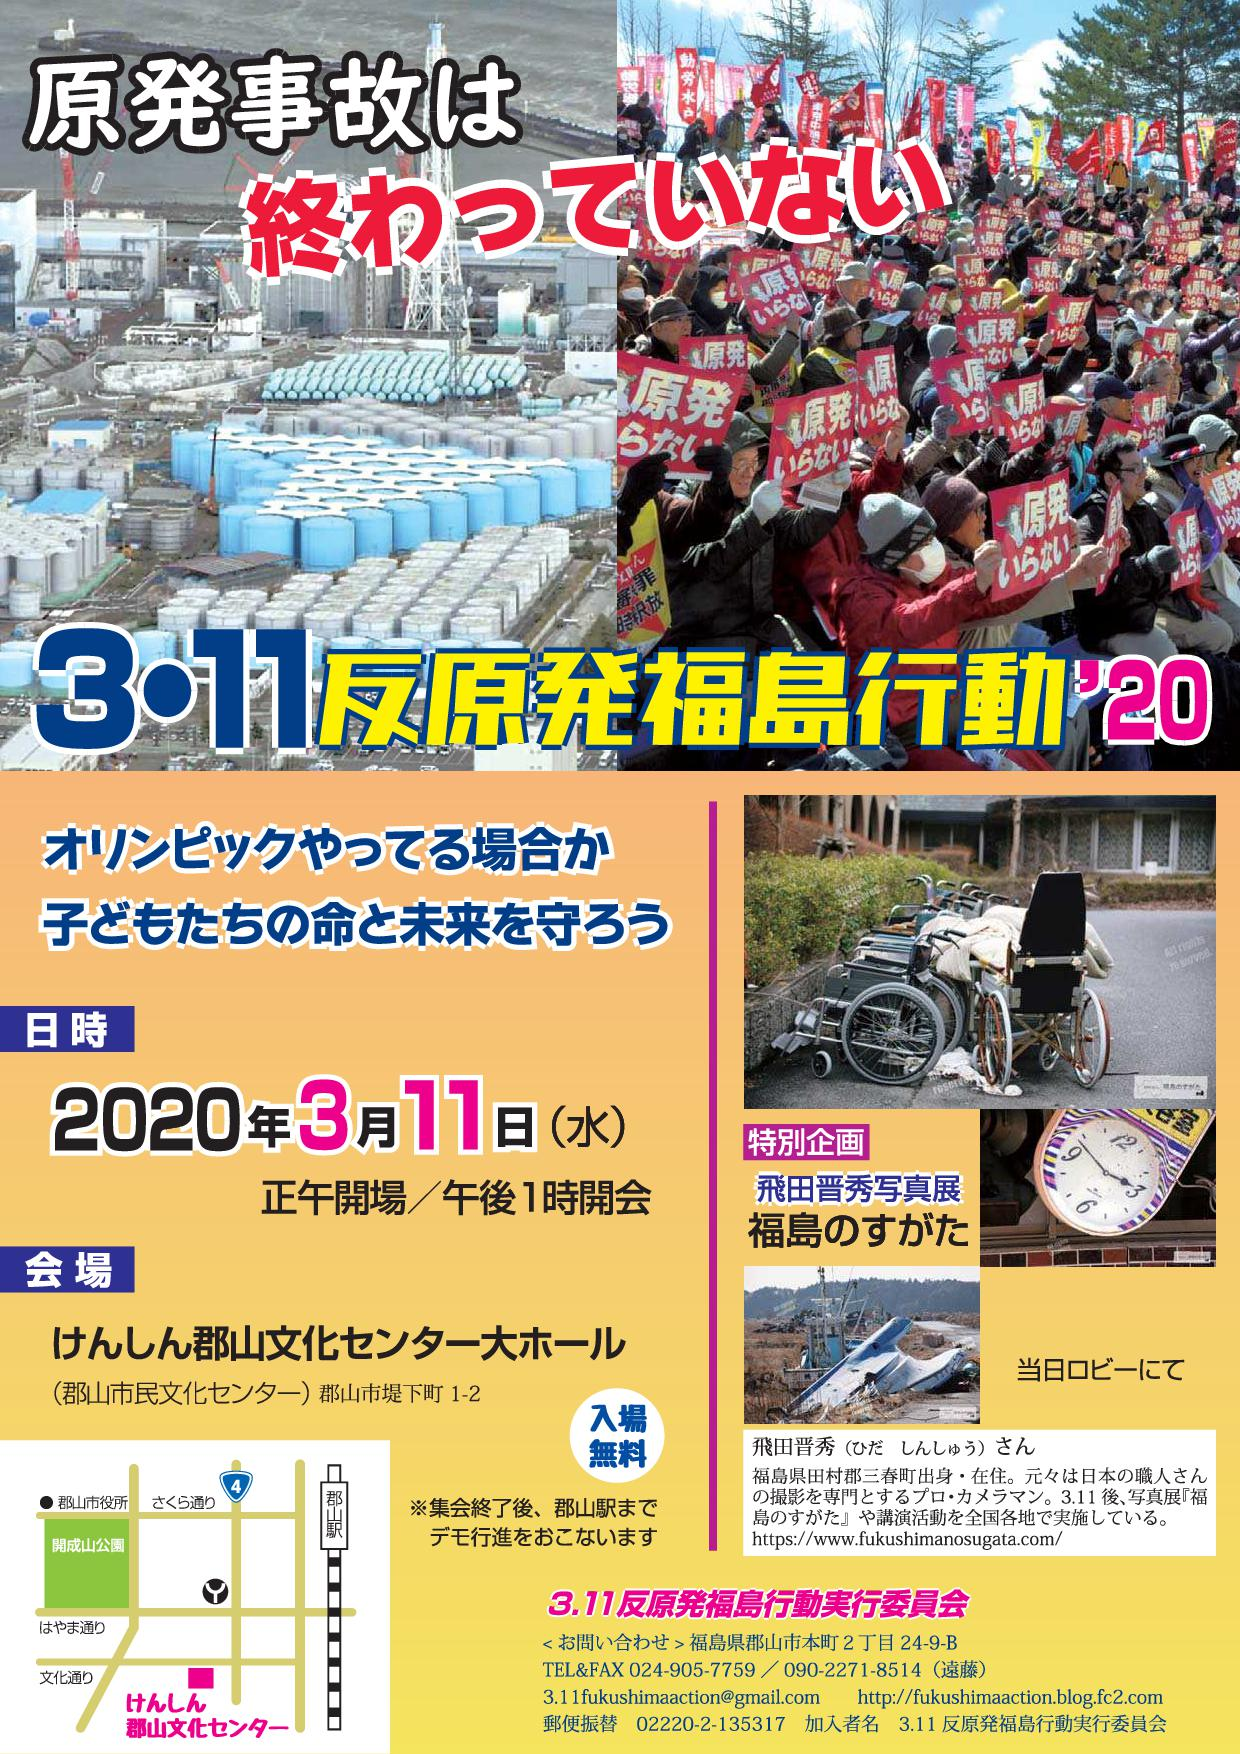 https://blog-imgs-132.fc2.com/f/u/k/fukushimaaction/2020311omote.jpg